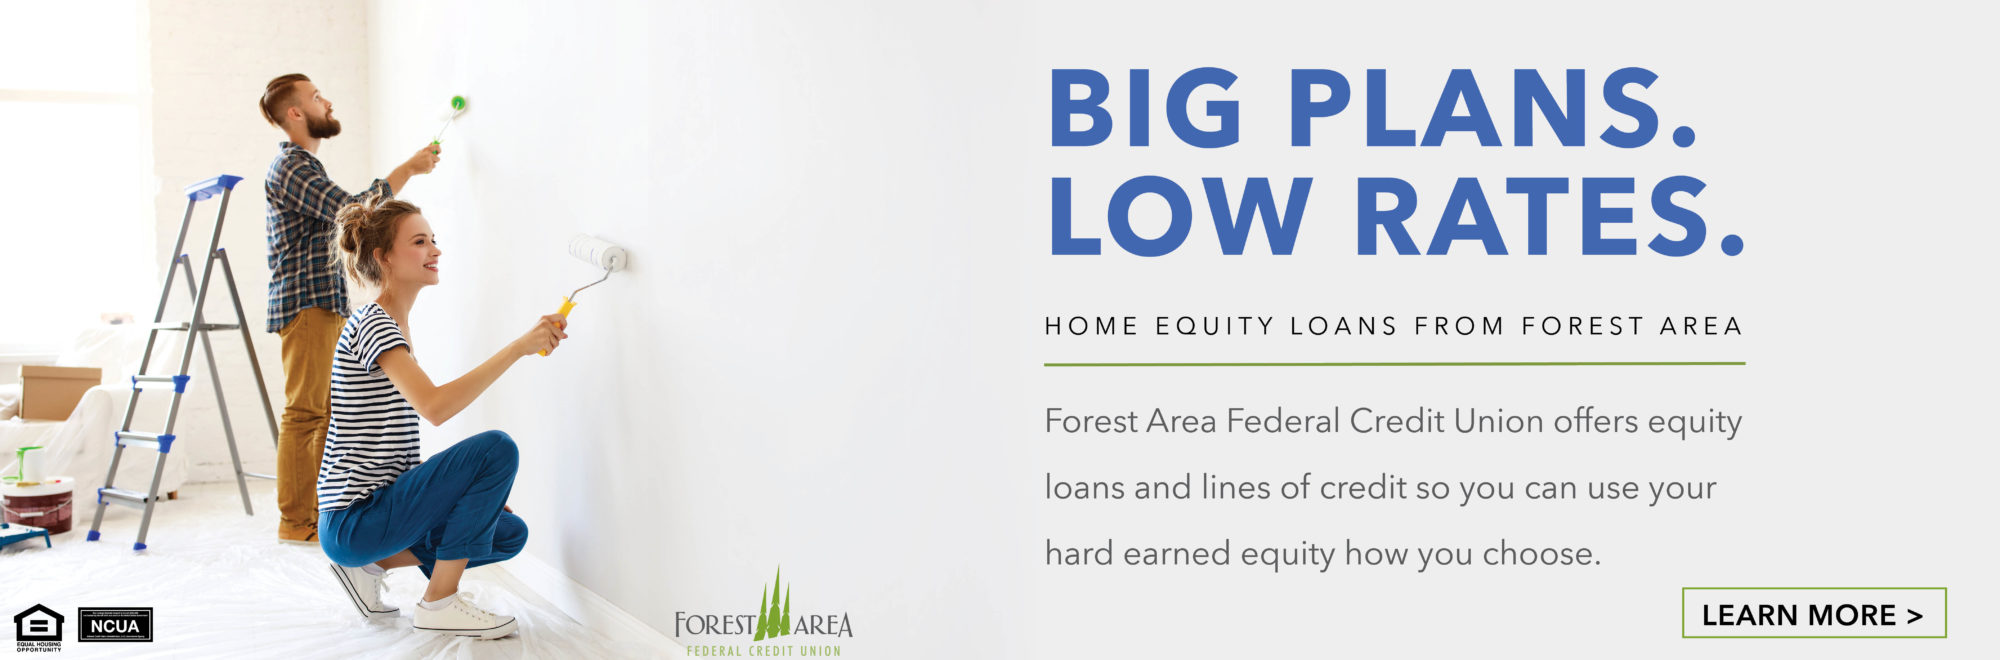 Forest Area FCU offers equity loans and lines of credit so you can use your hard earned equity how you choose